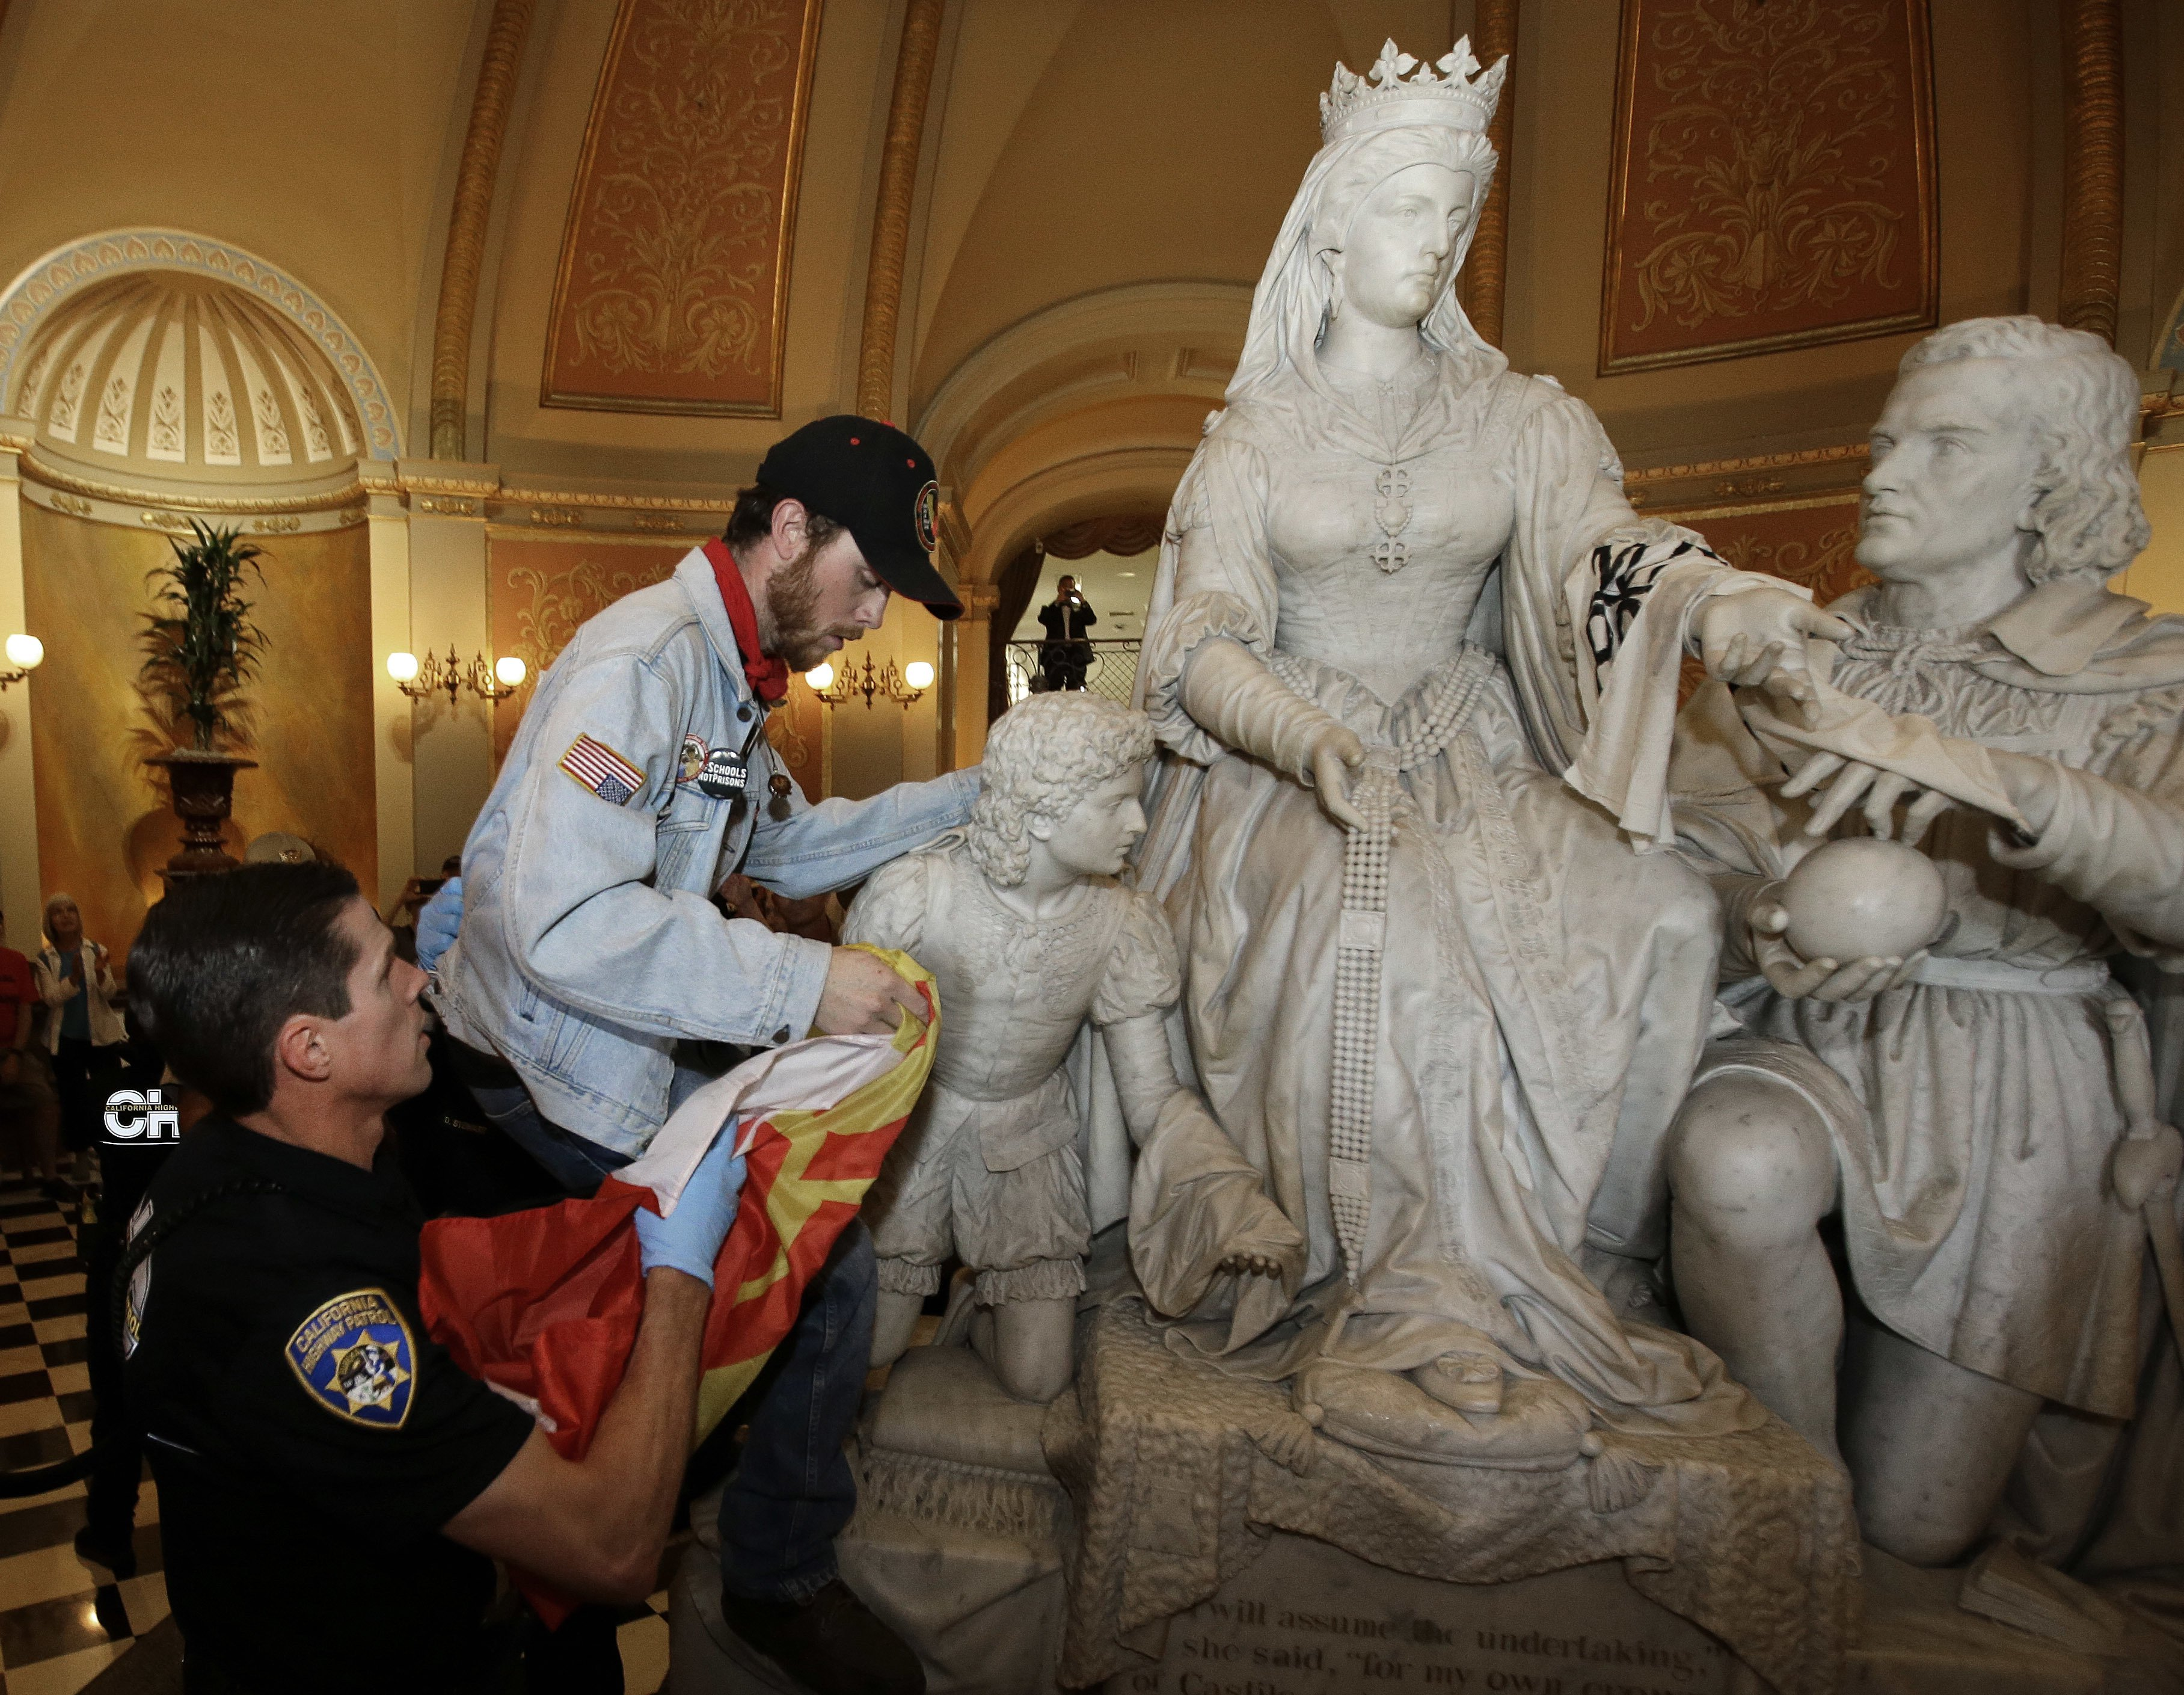 """FILE — In this June 4, 2018, file photo a demonstrator is removed from the statue of Queen Isabella and Christopher Columbus in the rotunda of the Capitol, by a California Highway Patrol officer, during a protest in Sacramento, Calif. Calling Columbus """"a deeply polarizing historical figure,"""" Senate President Pro Ten Toni Atkins, D-San Diego; Assembly Speaker Anthony Rendon, D-Lakewood; and Assembly Rules Committee Chairman Ken Cooley, D-Rancho Cordova, announced Tuesday, June 16, 2020, that the controversial statue will be removed. (AP Photo/Rich Pedroncelli, File)"""